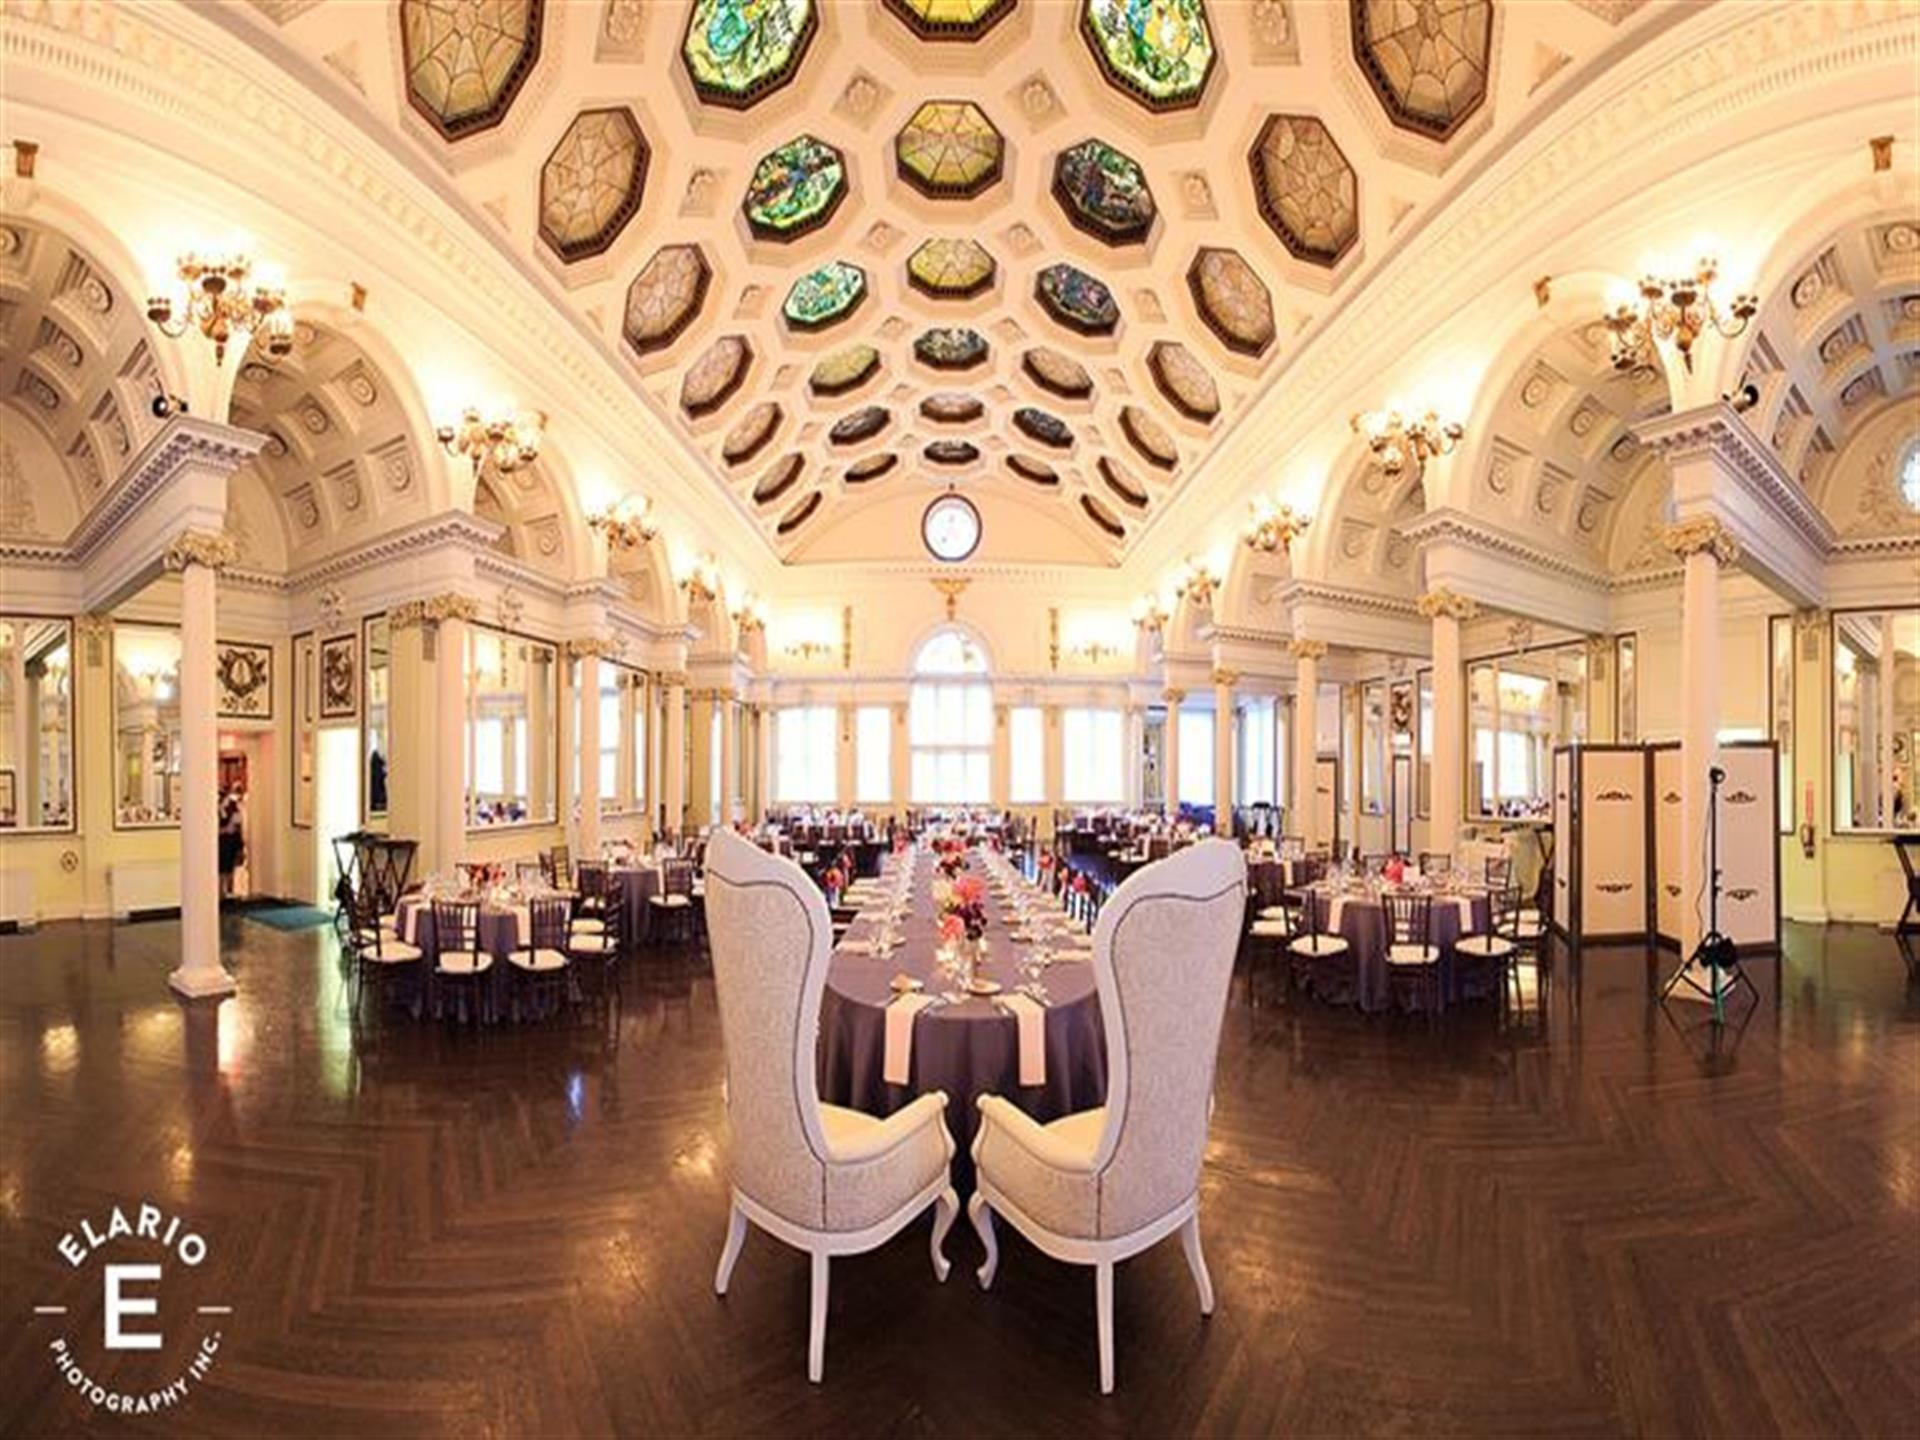 Large hall with covered dining tables and high ceilings